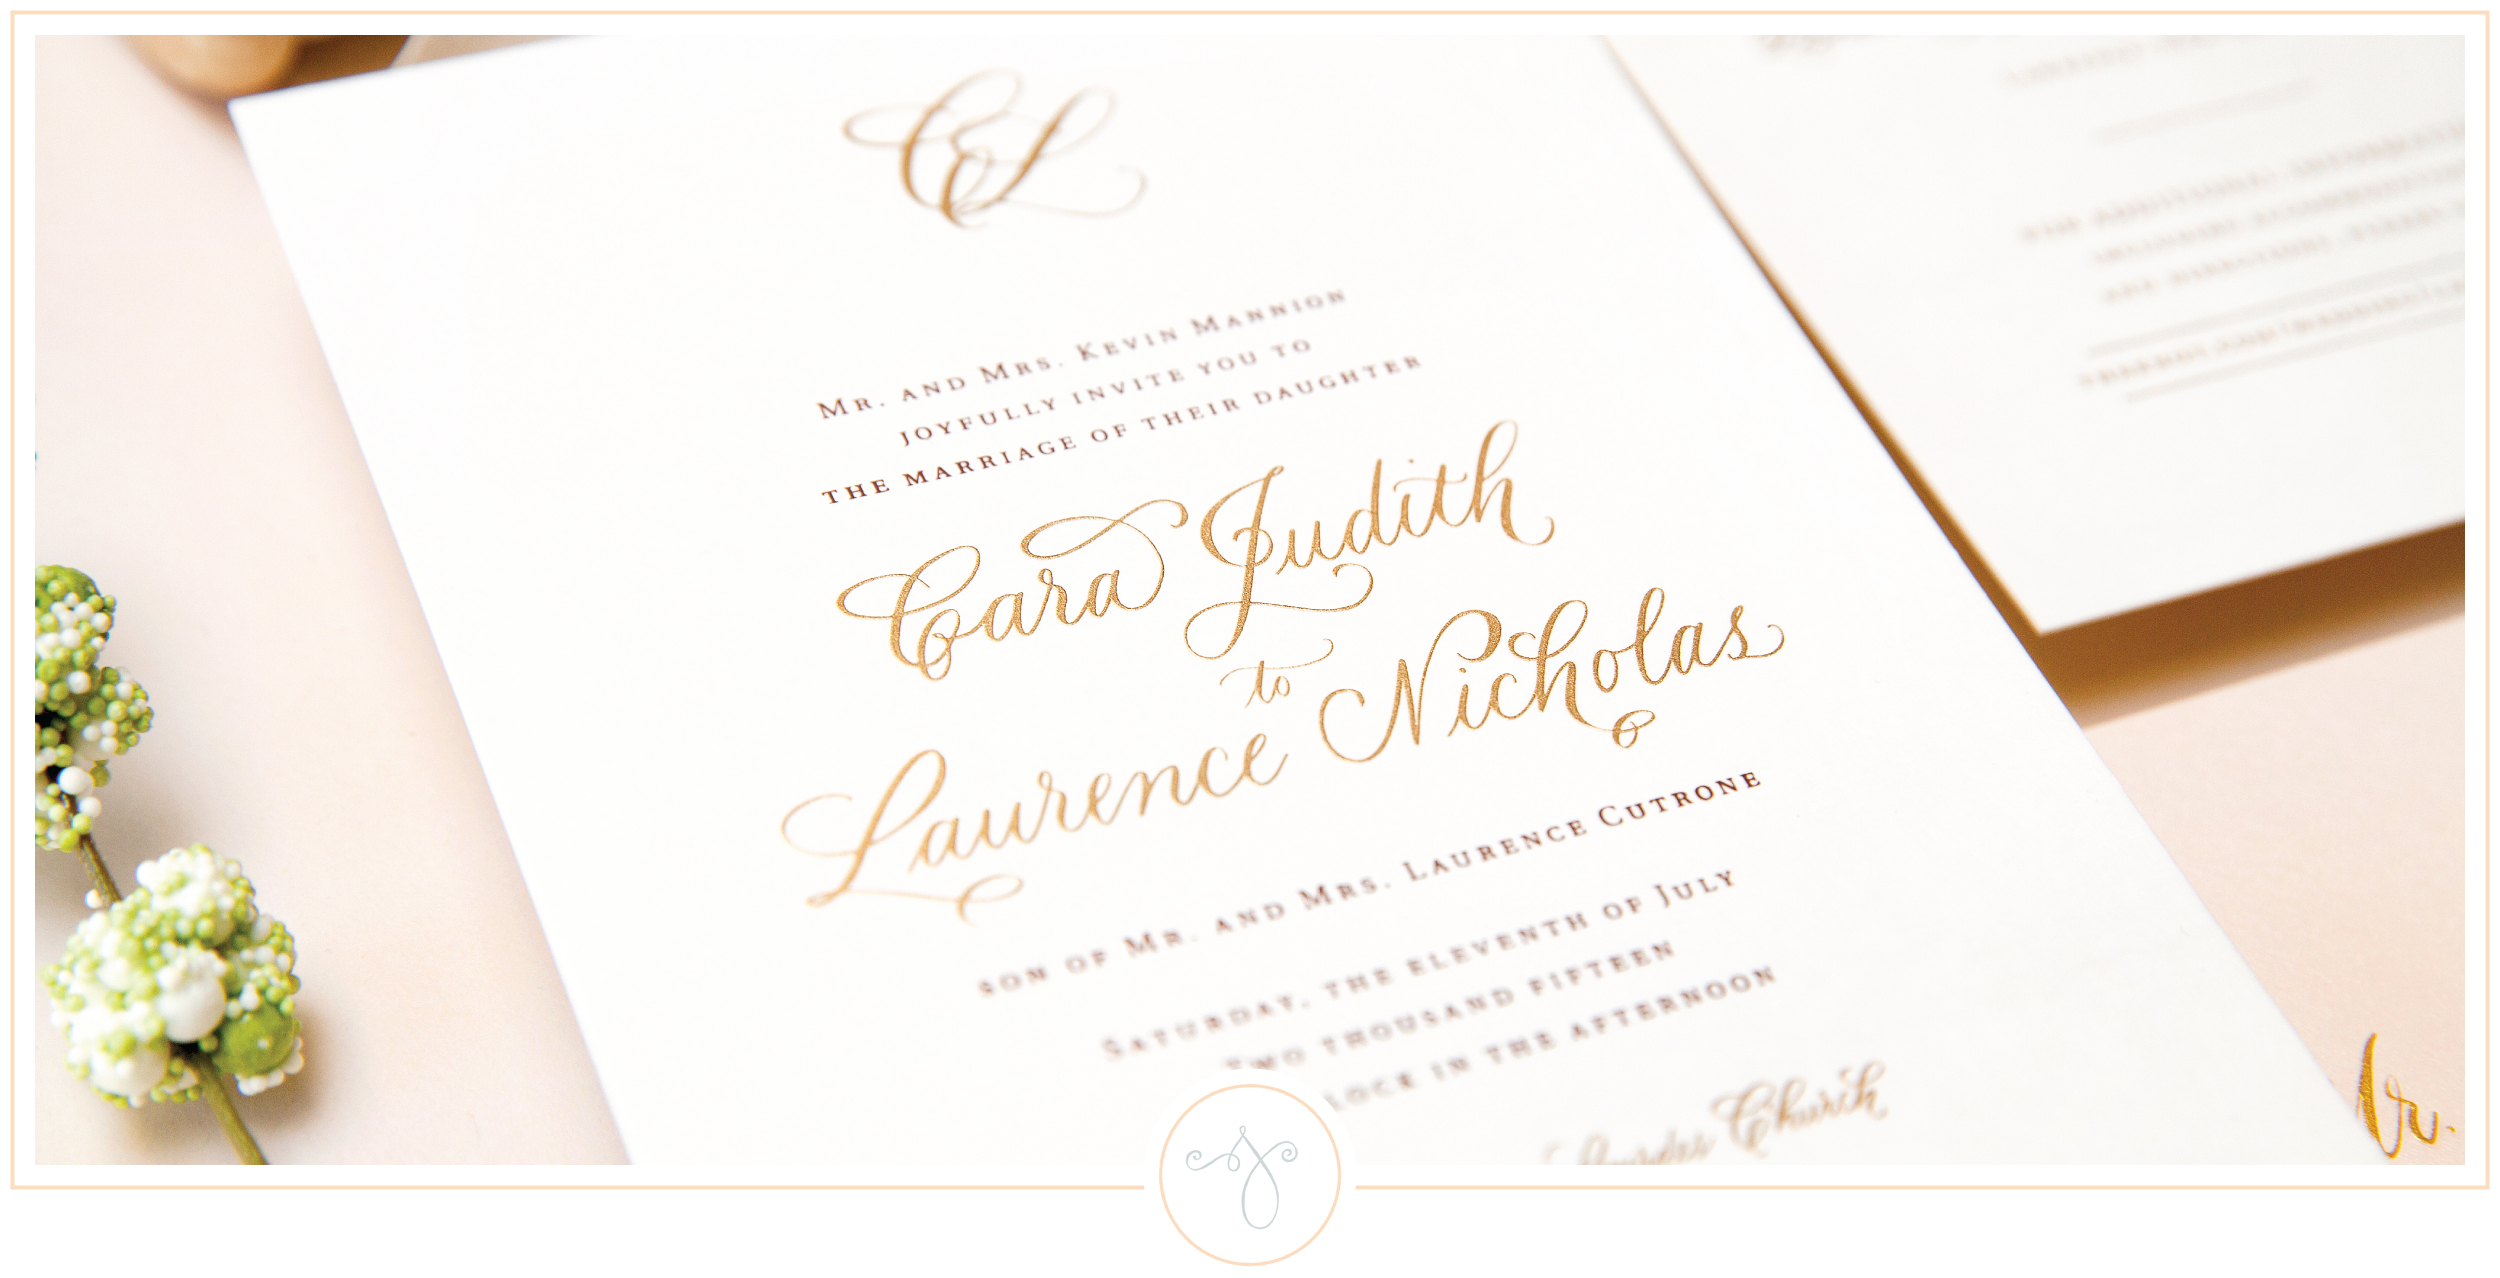 Sincerely-Jackie-Long-Island-Custom-Wedding-Invitations-2.jpg